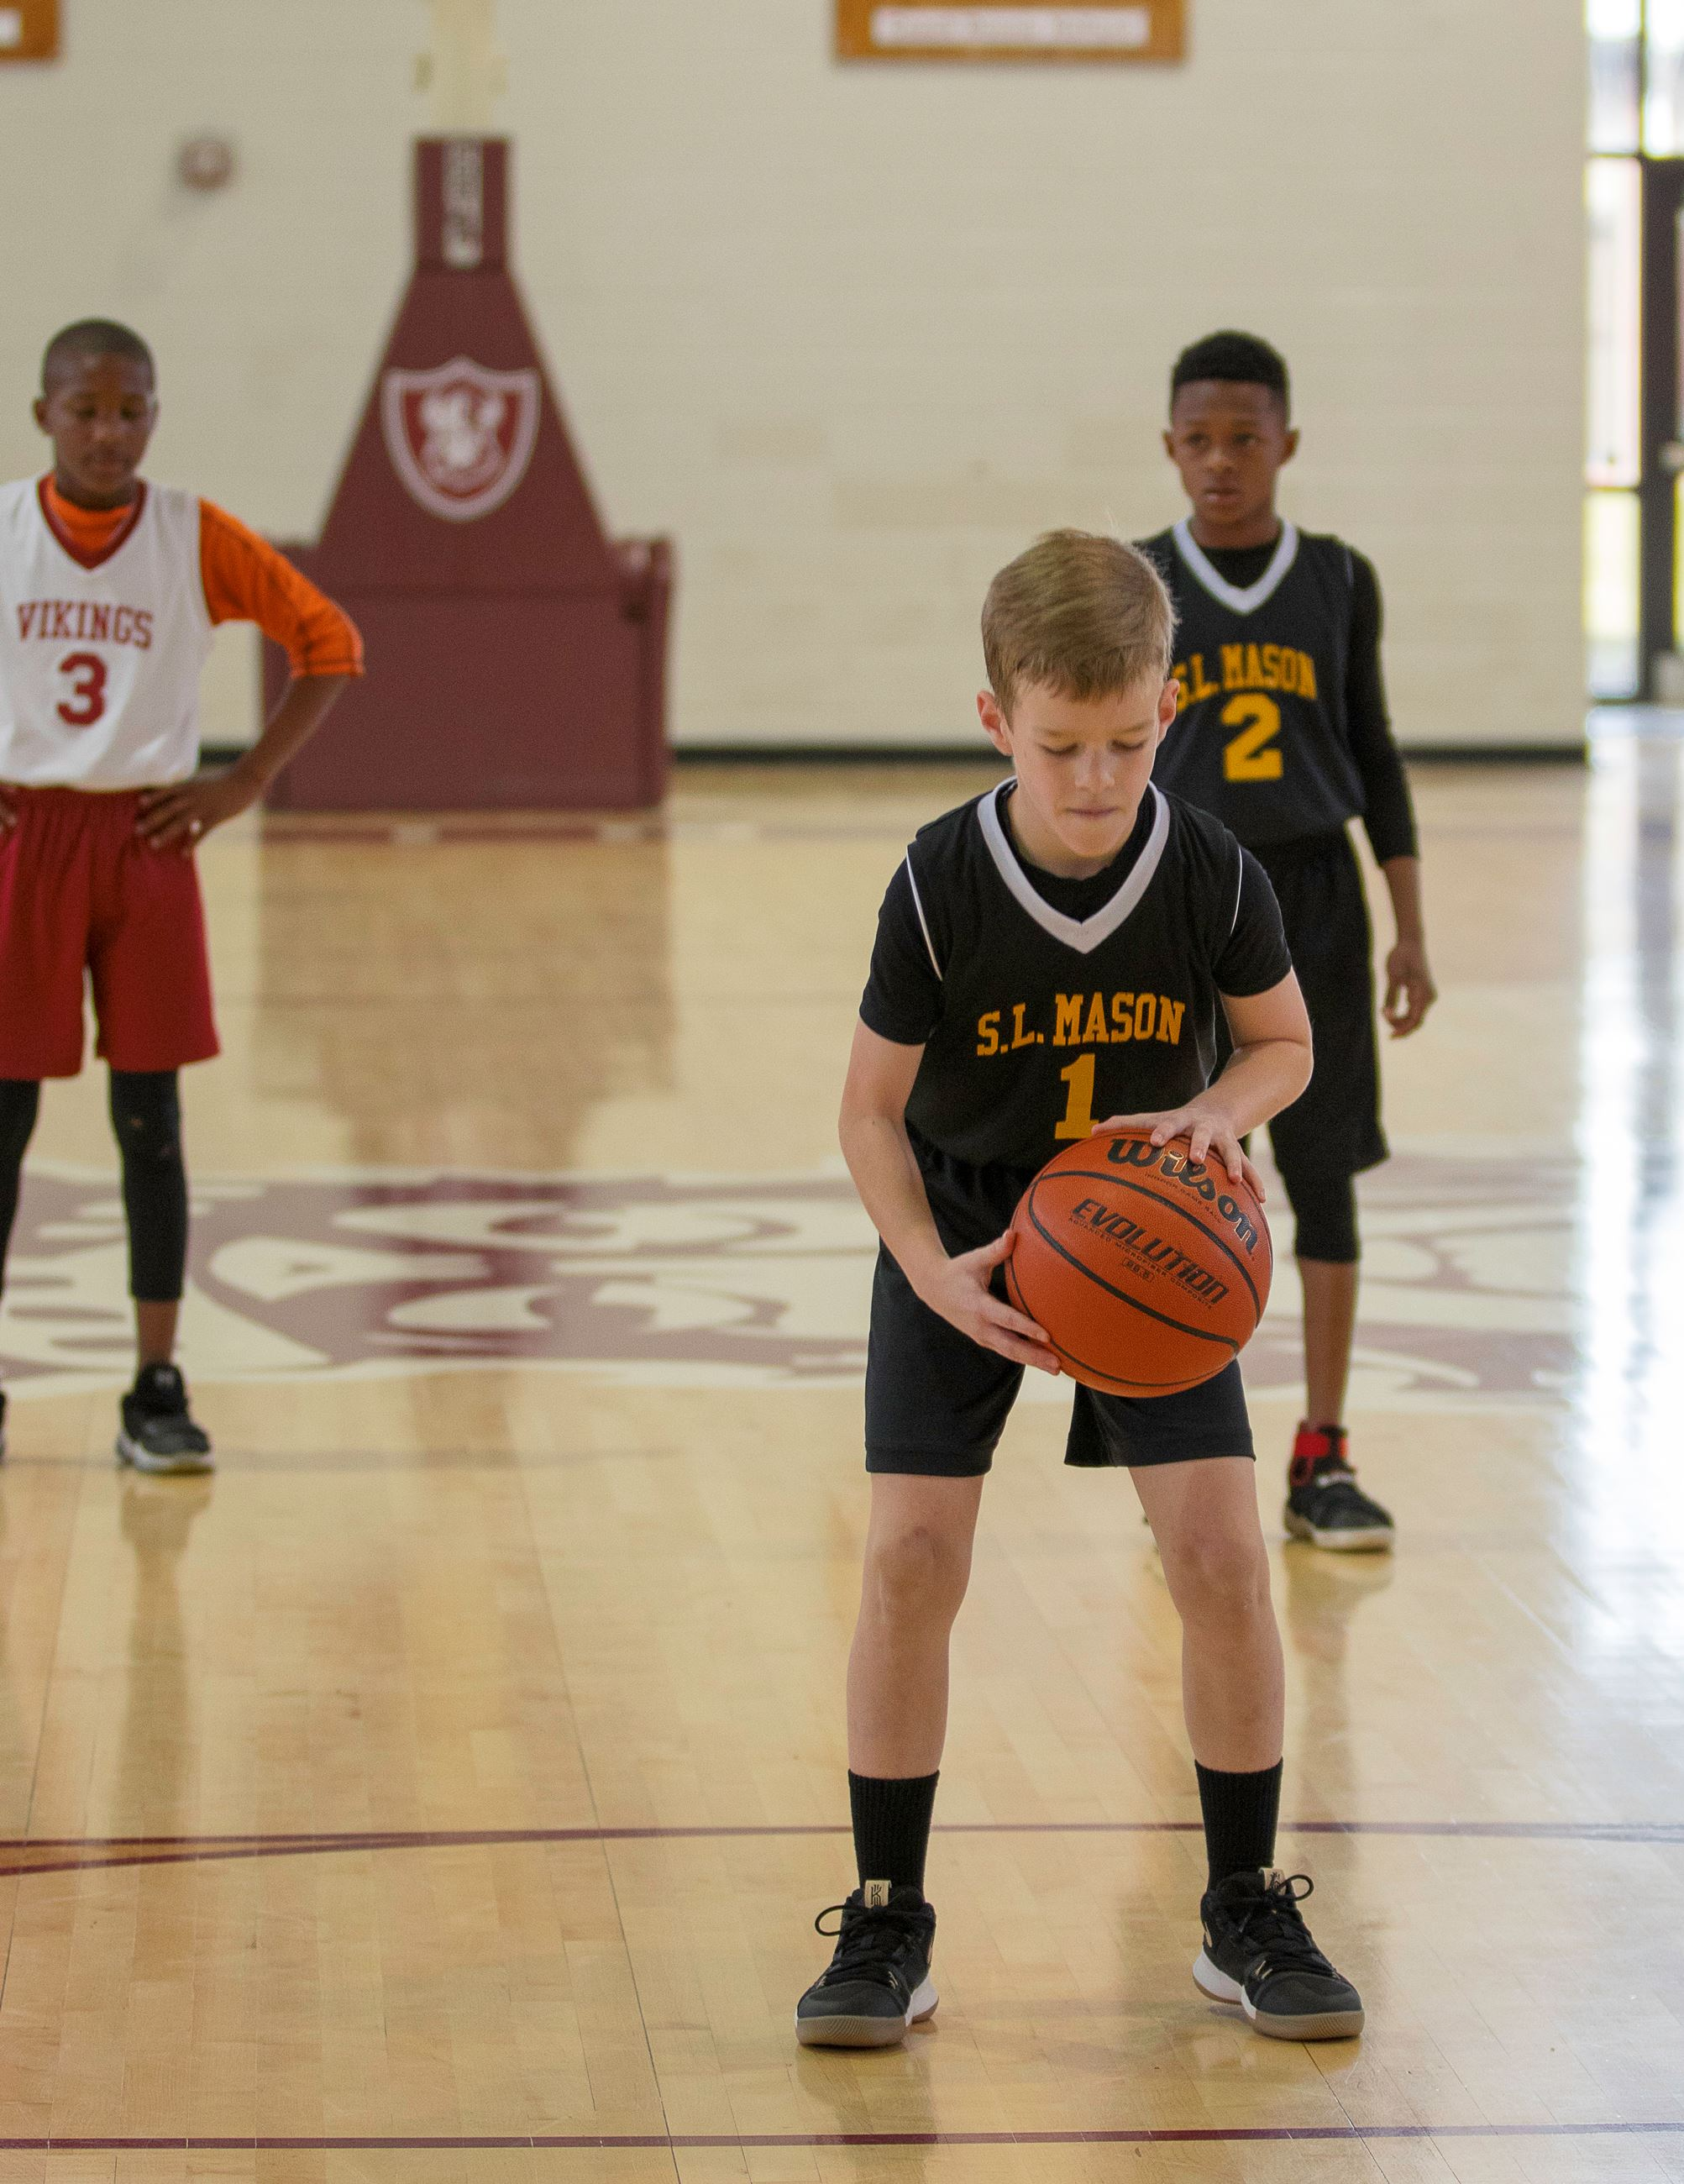 Image of boy playing basketball.